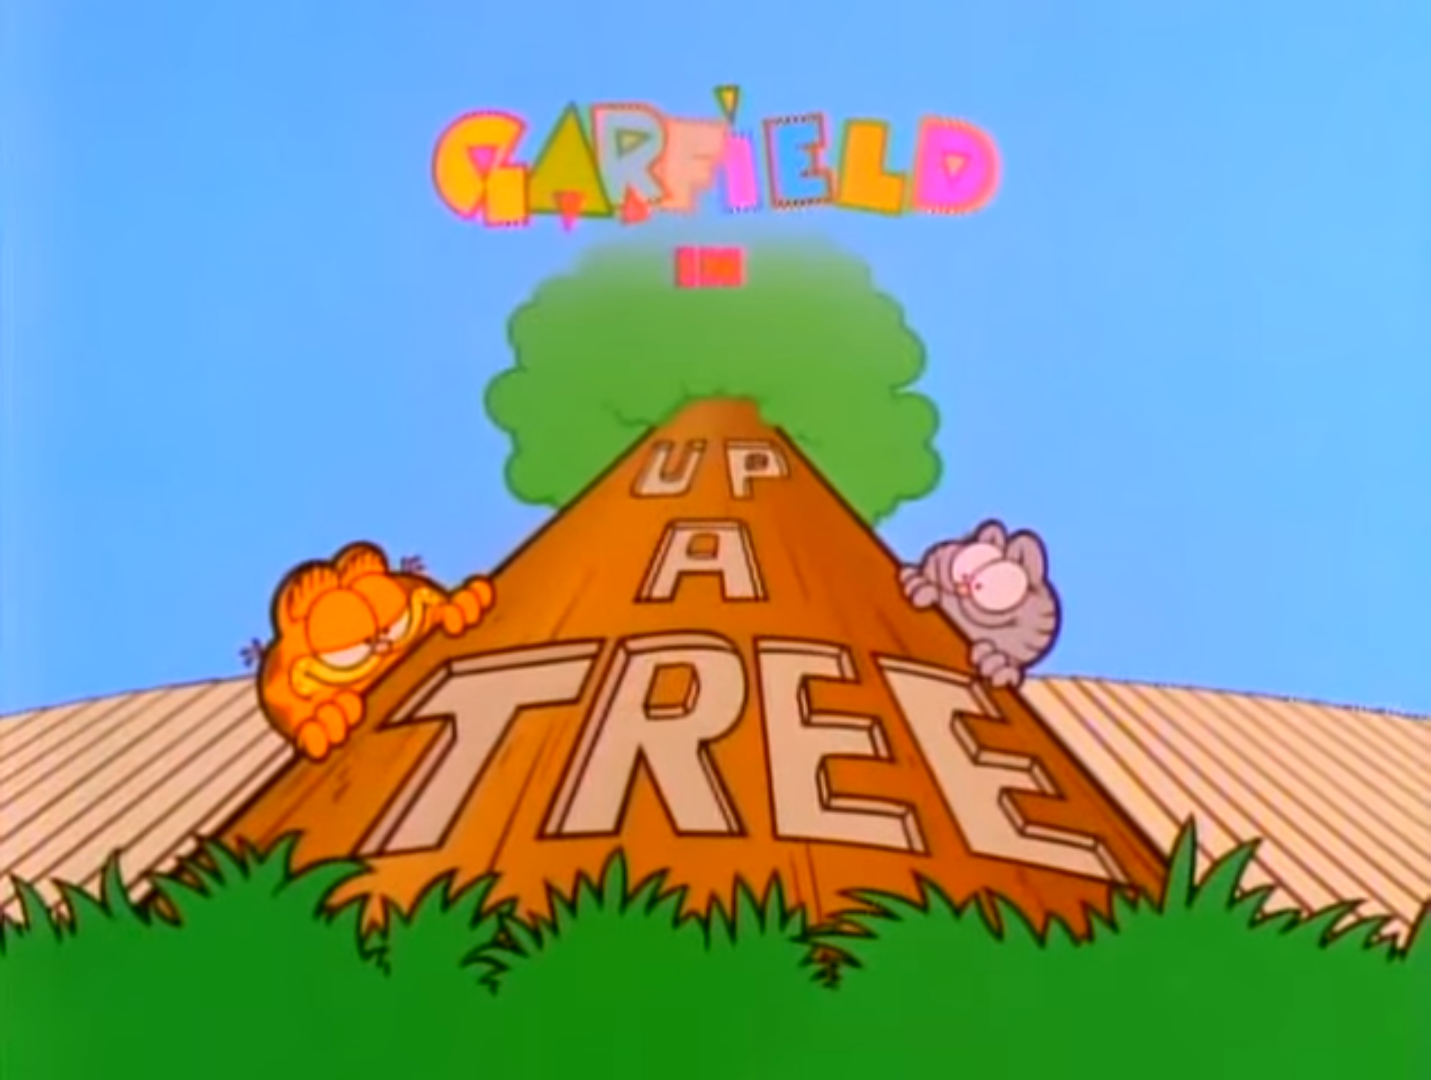 Up a Tree (Garfield and Friends)